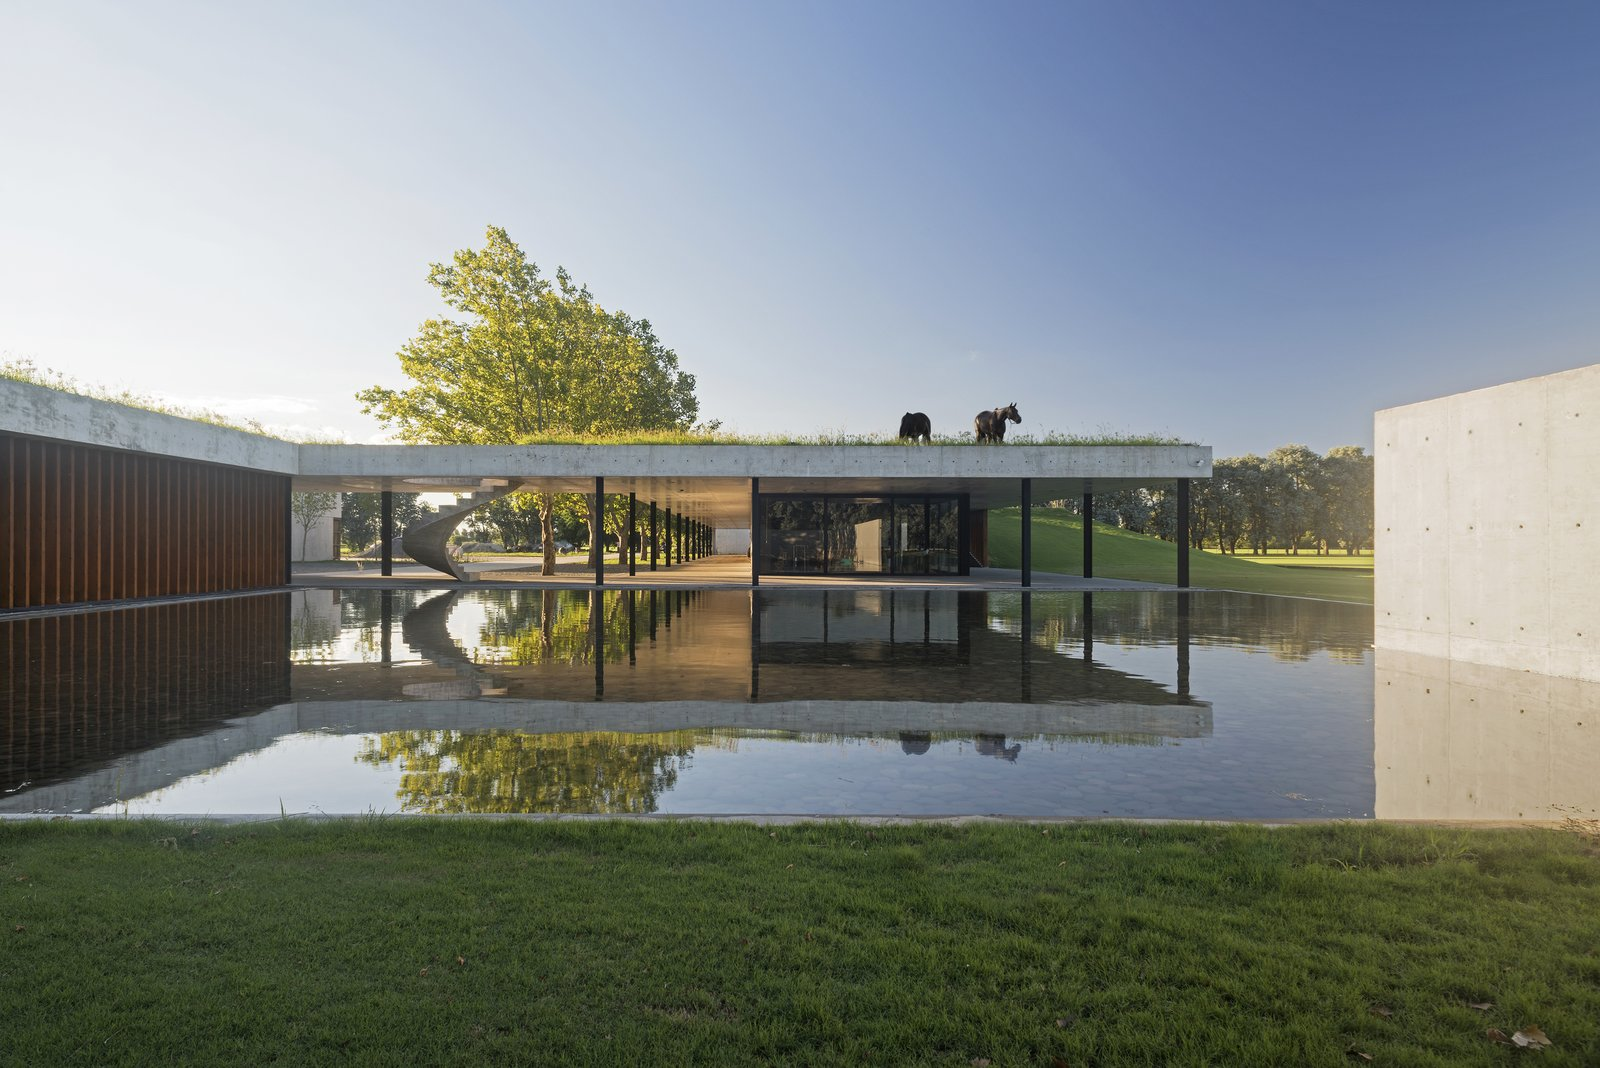 Outdoor, Grass, and Large Pools, Tubs, Shower Buenos Aires-based Estudio Ramos designs a concrete, wood, and iron stable that houses 44 prized horses and melds with the surrounding plains.  In central Argentina, the province of La Pampa is dominated by vast, grassy plains whose fertile soil supports myriad farms and ranches. Stretching out in all directions, the flatlands resemble an ocean in its sheer horizontality. When professional polo player Nacho Figueras—a champion of the sport and a longtime Ralph Lauren model—enlisted architect Juan Ignacio Ramos of Estudio Ramos to build a stable for 44 polo horses, the architect was sure to incorporate the region's meditative flatness into the design.  Photos from Celebrated Polo Player Nacho Figueras Commissions a Low-Slung, Concrete Stable